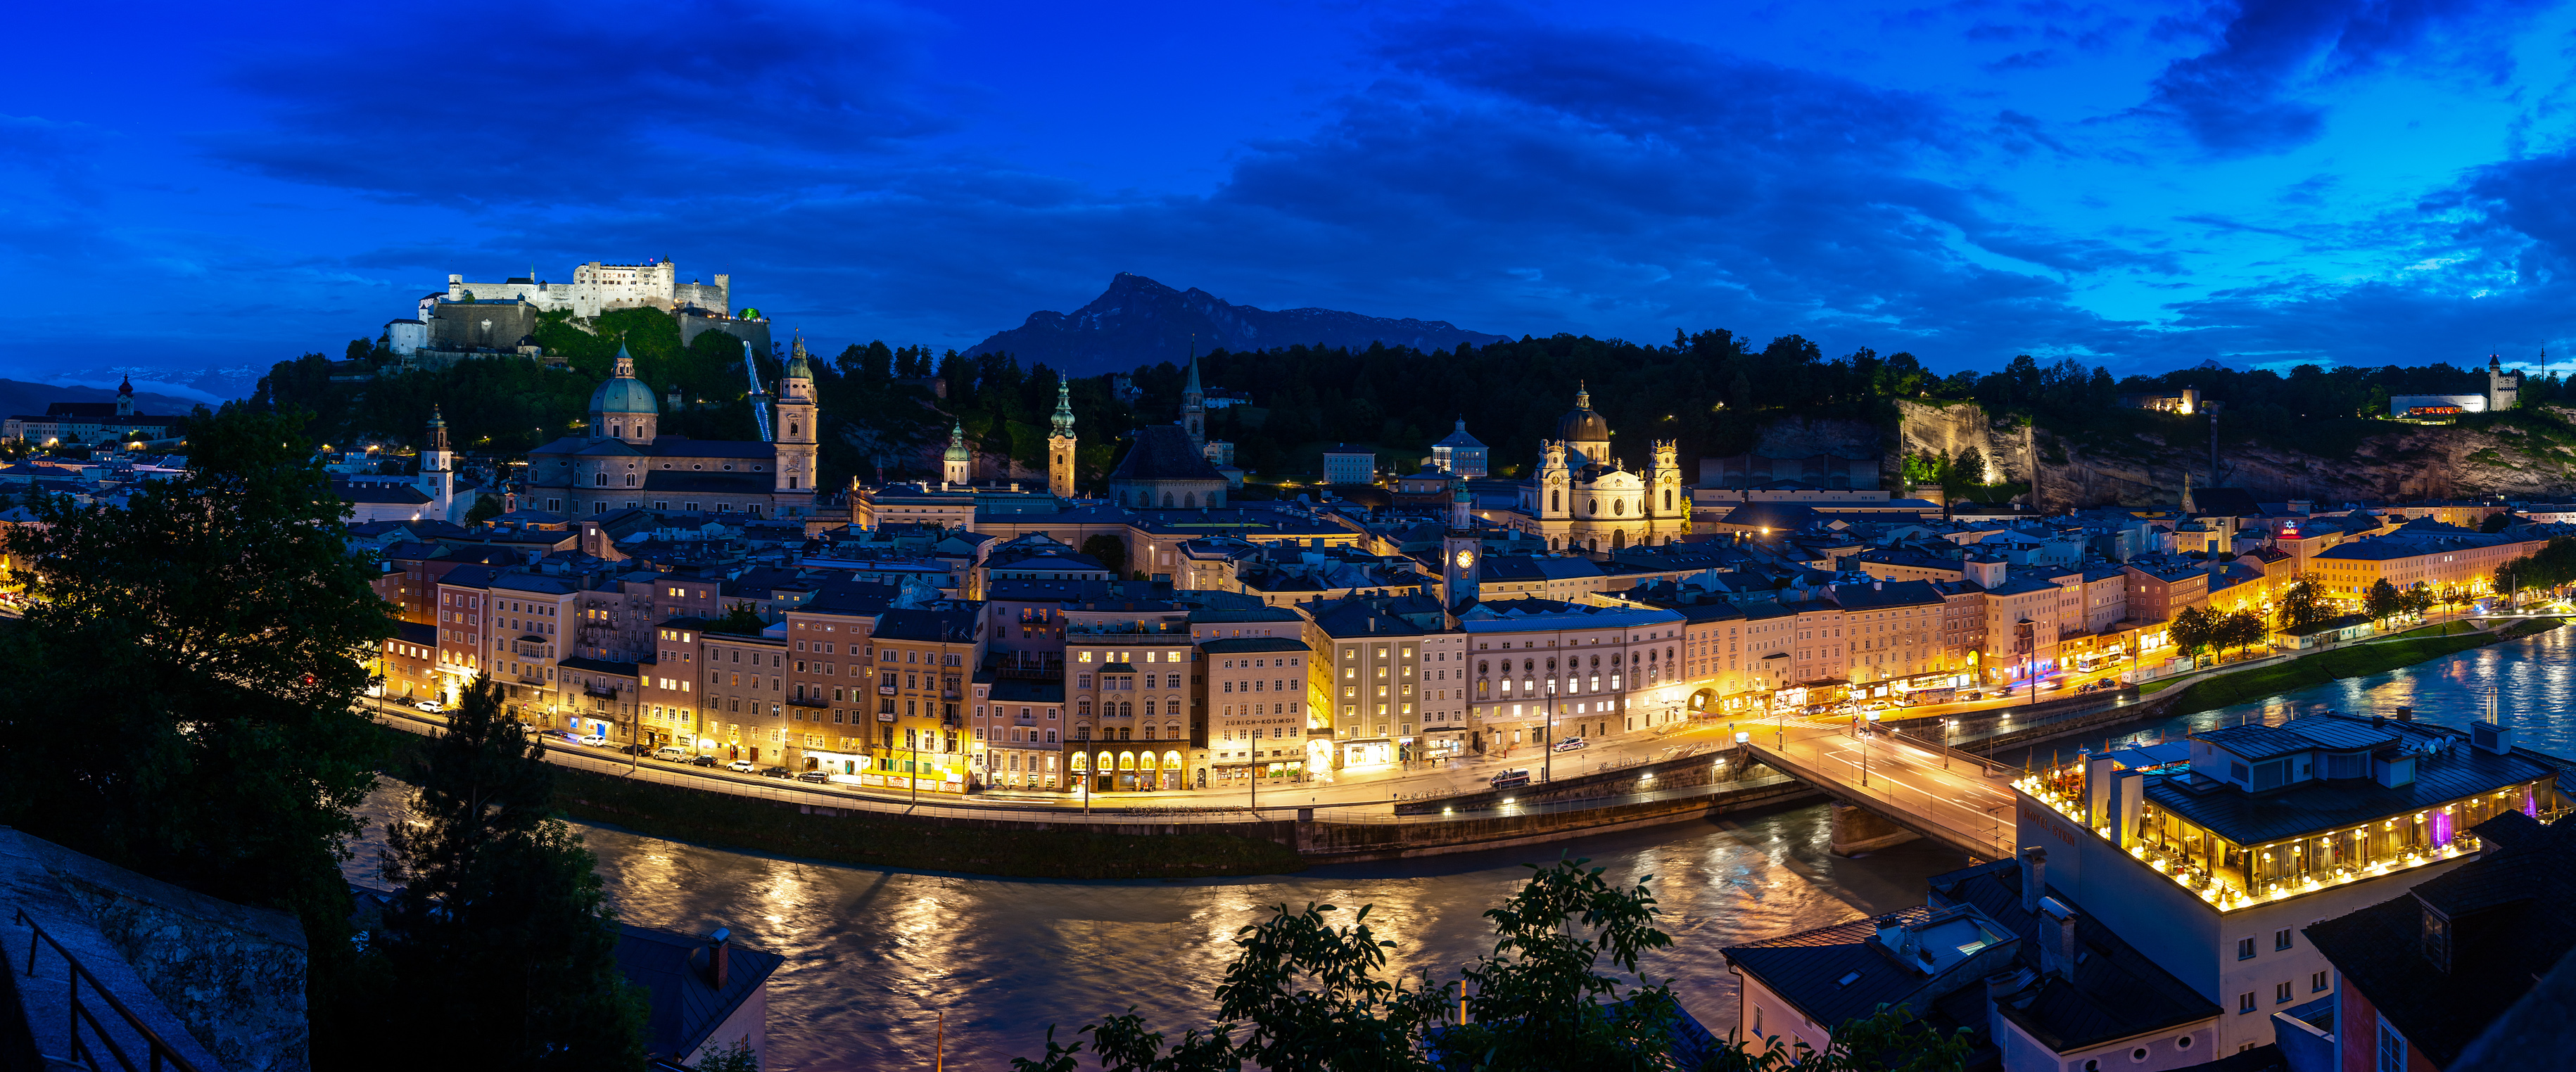 salzburg-photo